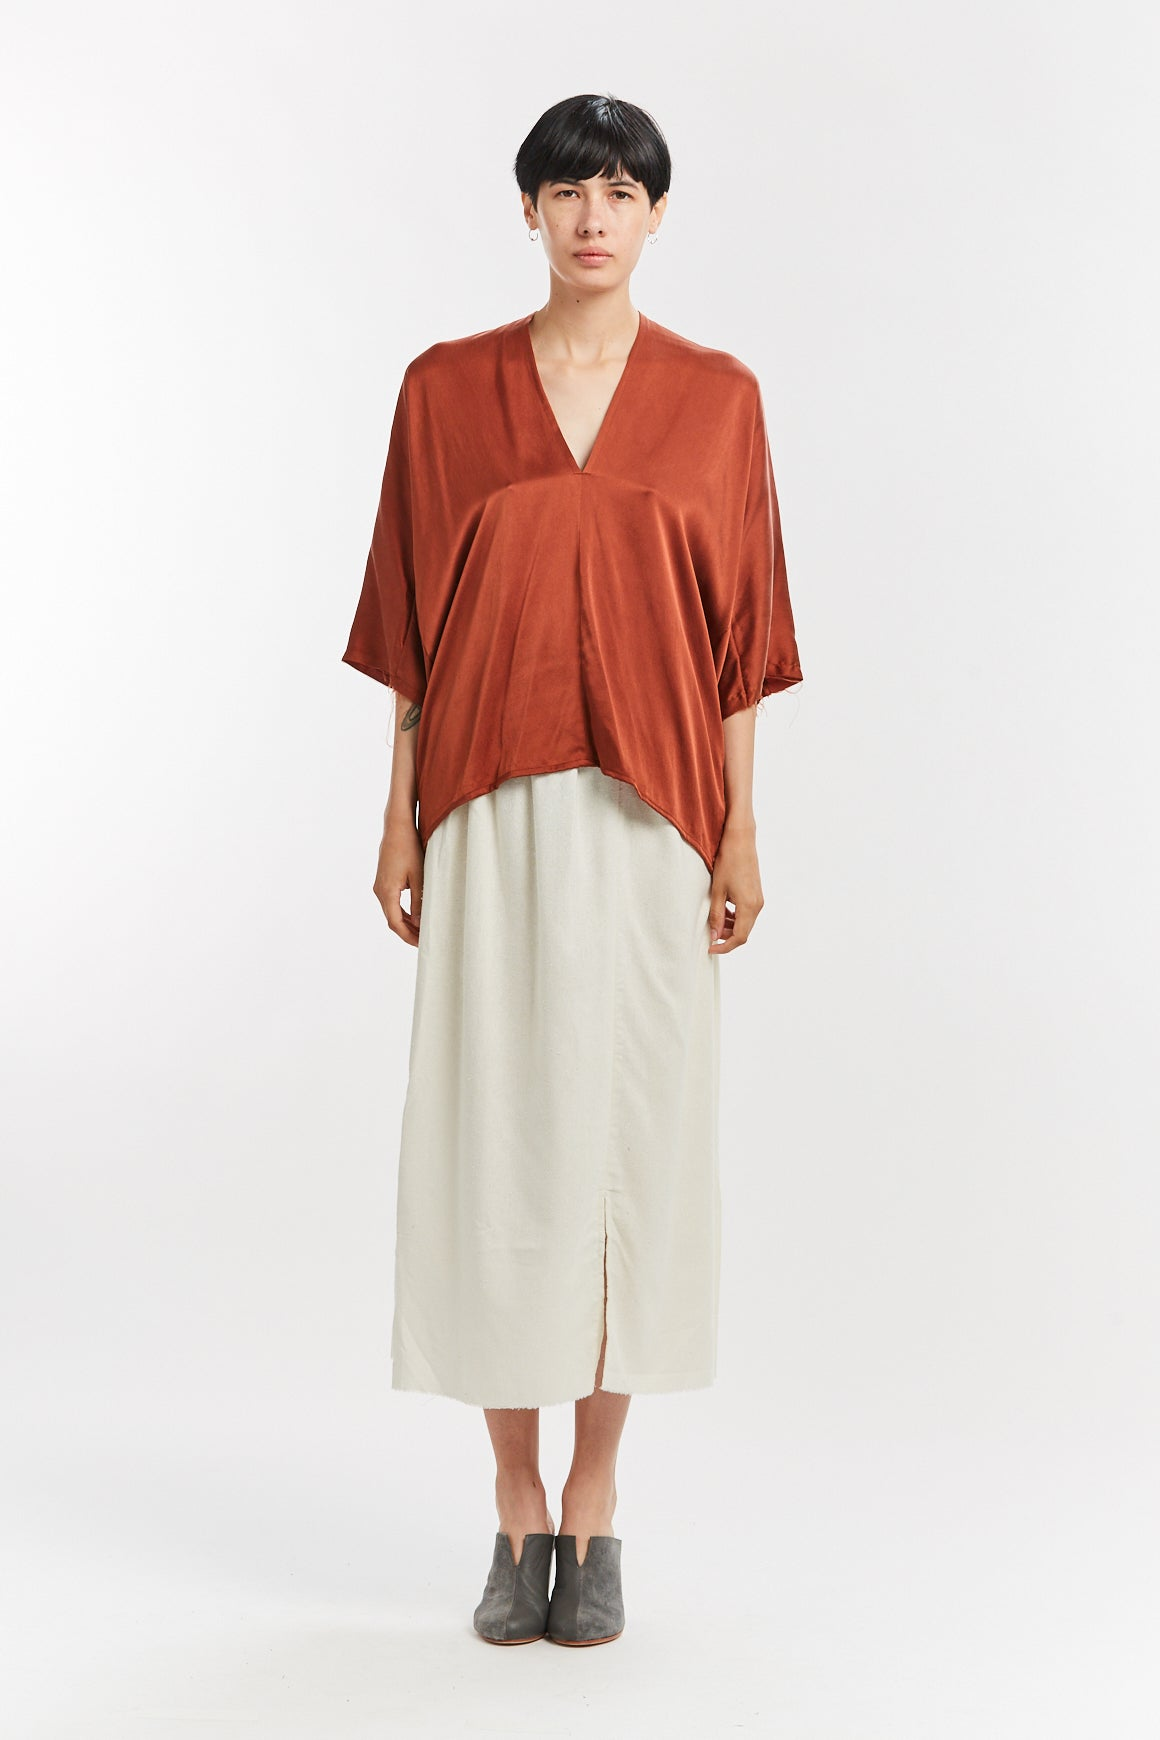 Muse Top, Silk Charmeuse in Palermo